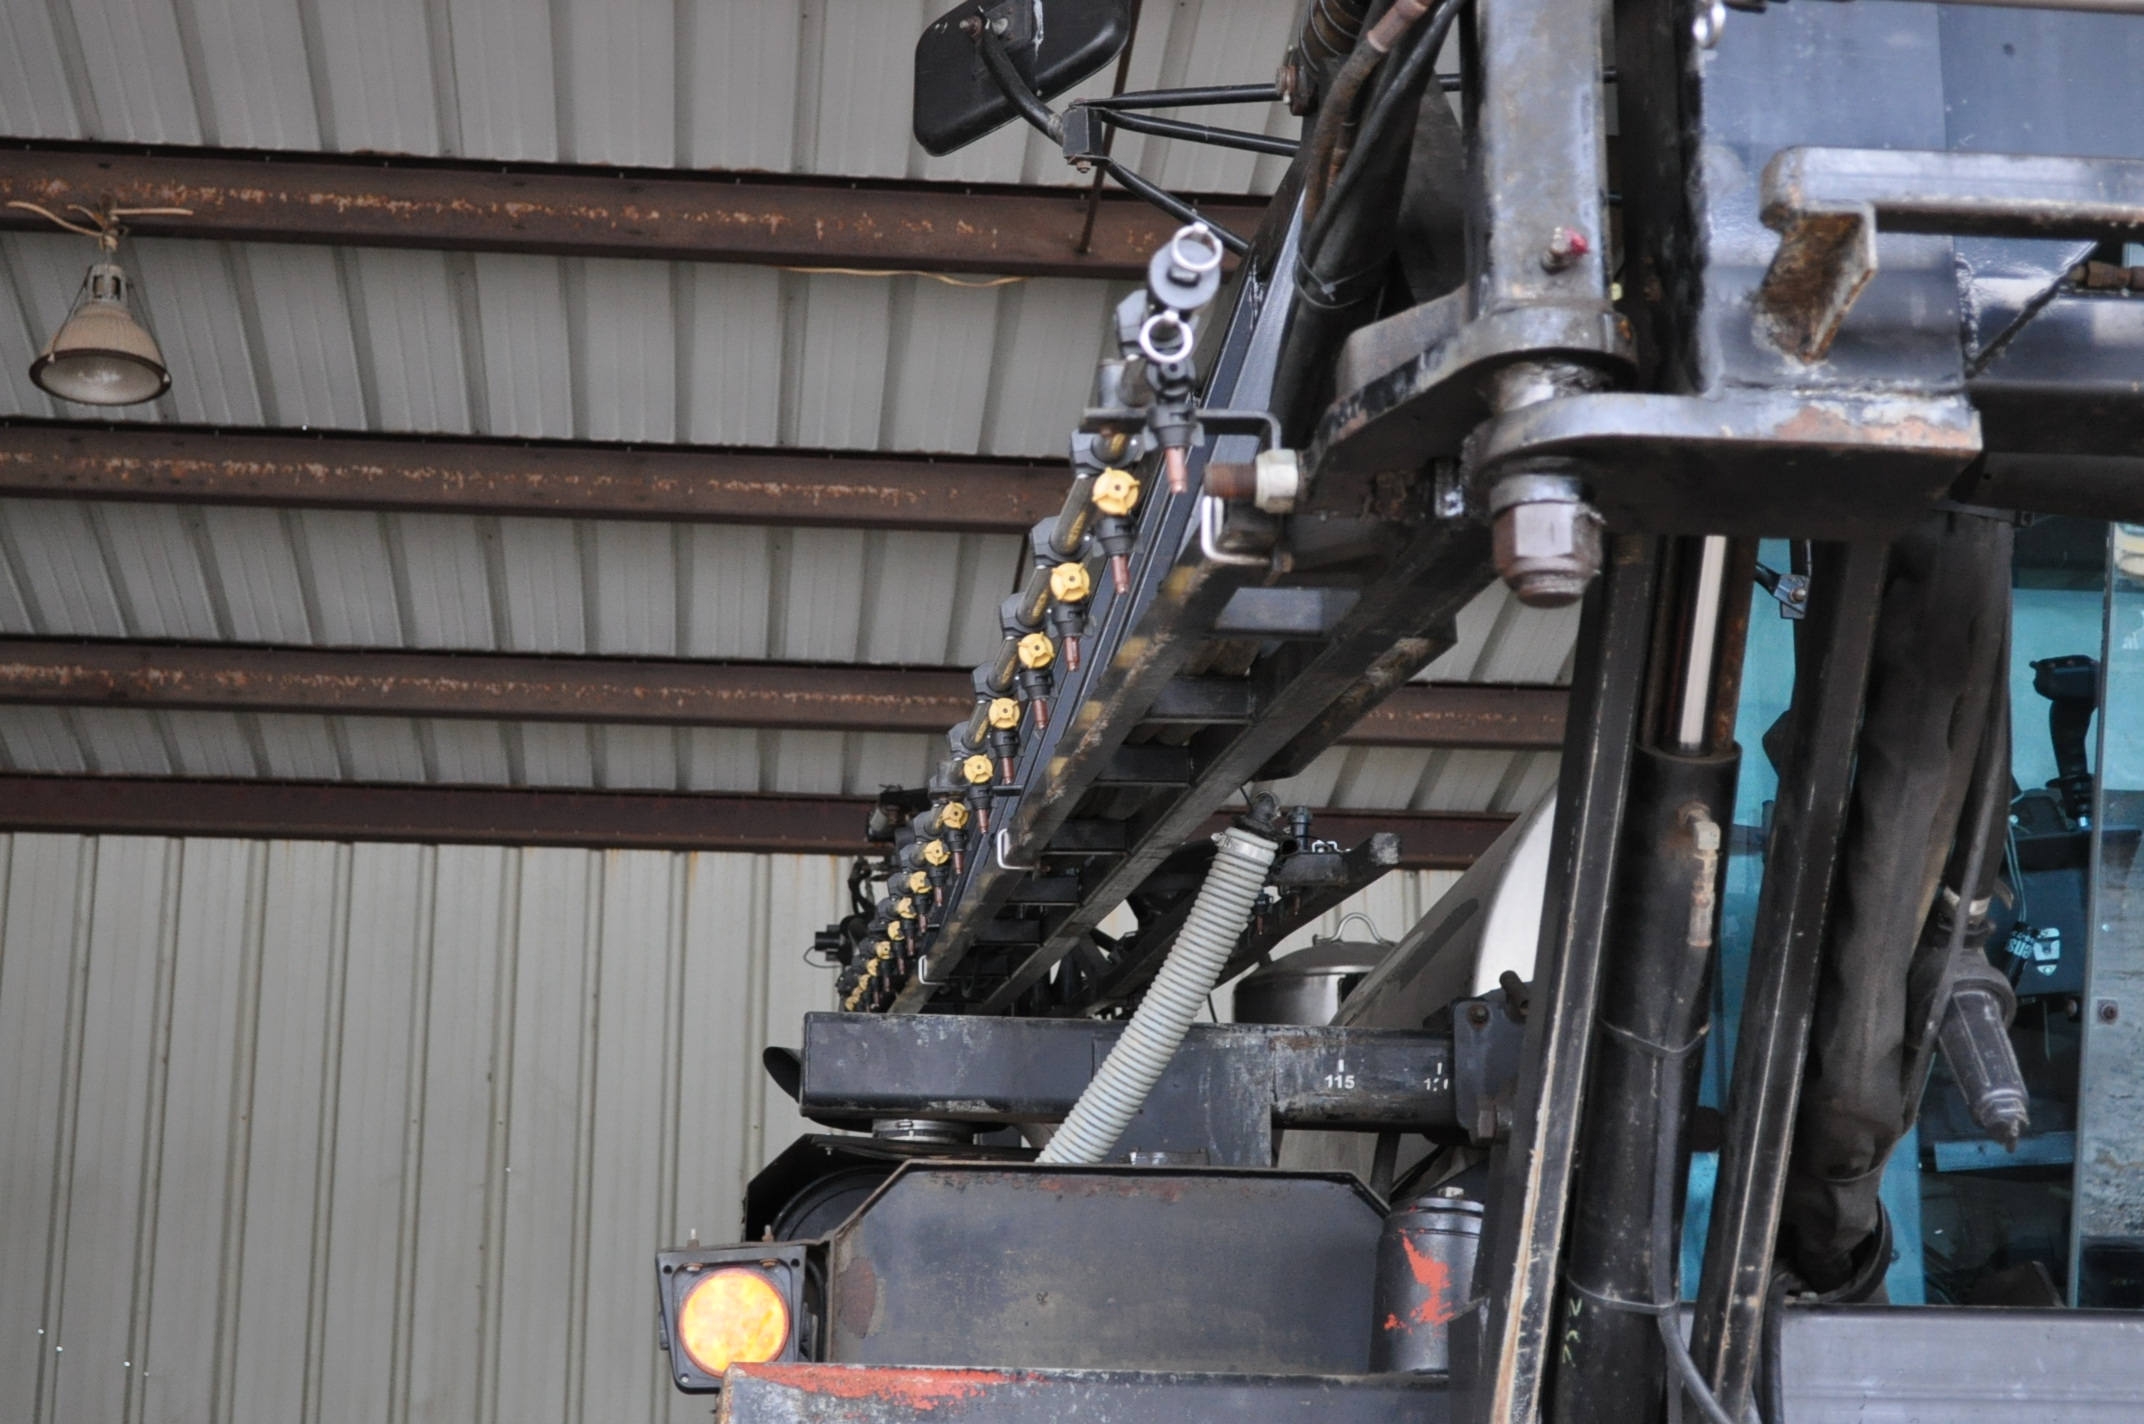 """Silver Wheels Voyager 2000 sprayer, 14.9R46 tires, hydrostatic, 90' boom, 15"""" nozzle spacing, 1000 - Image 10 of 21"""